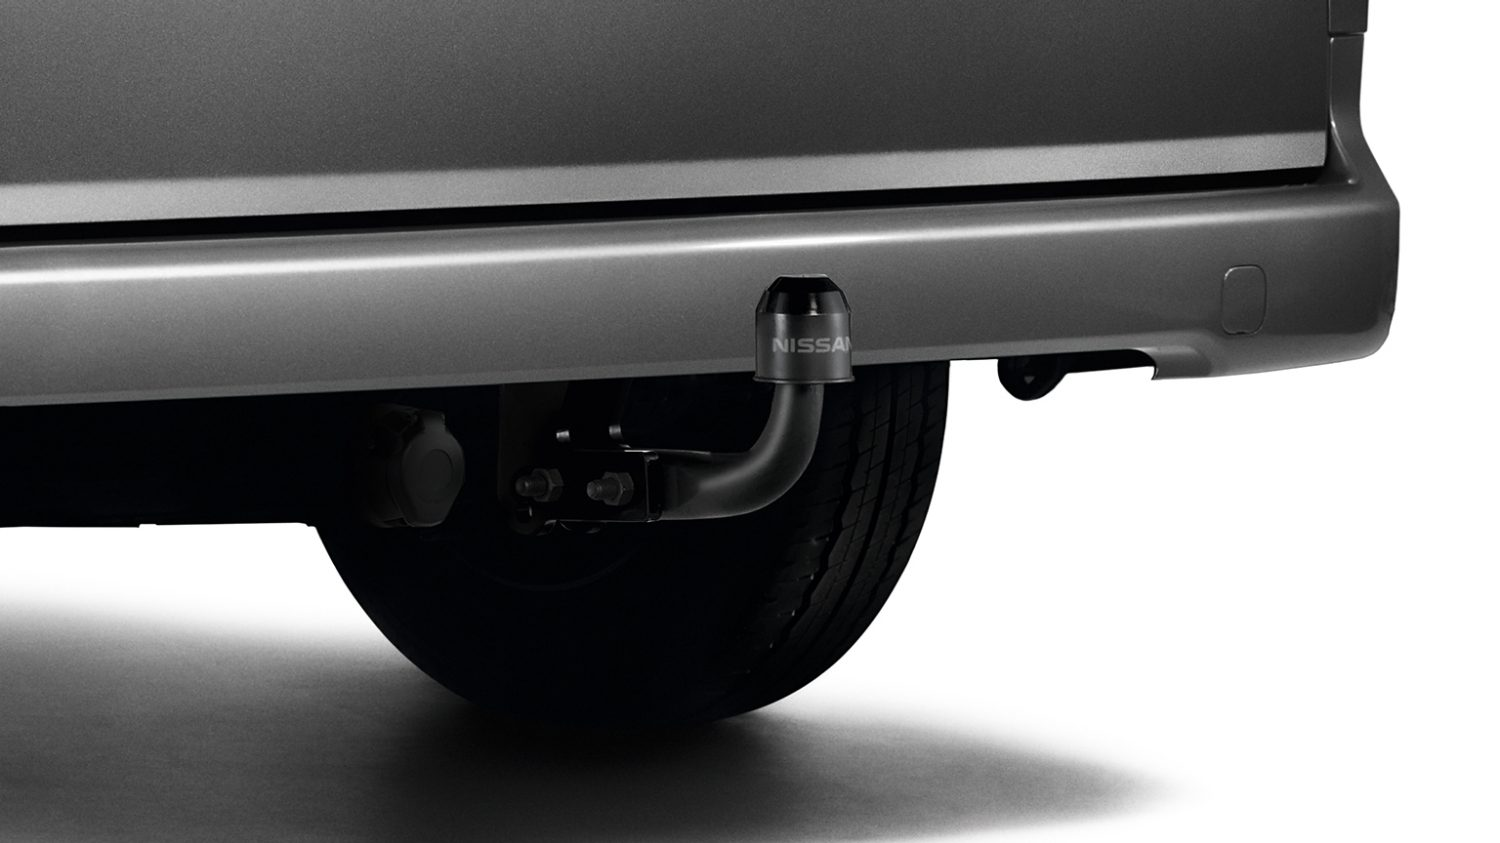 Nissan Evalia - Transportation - Fixed towbar